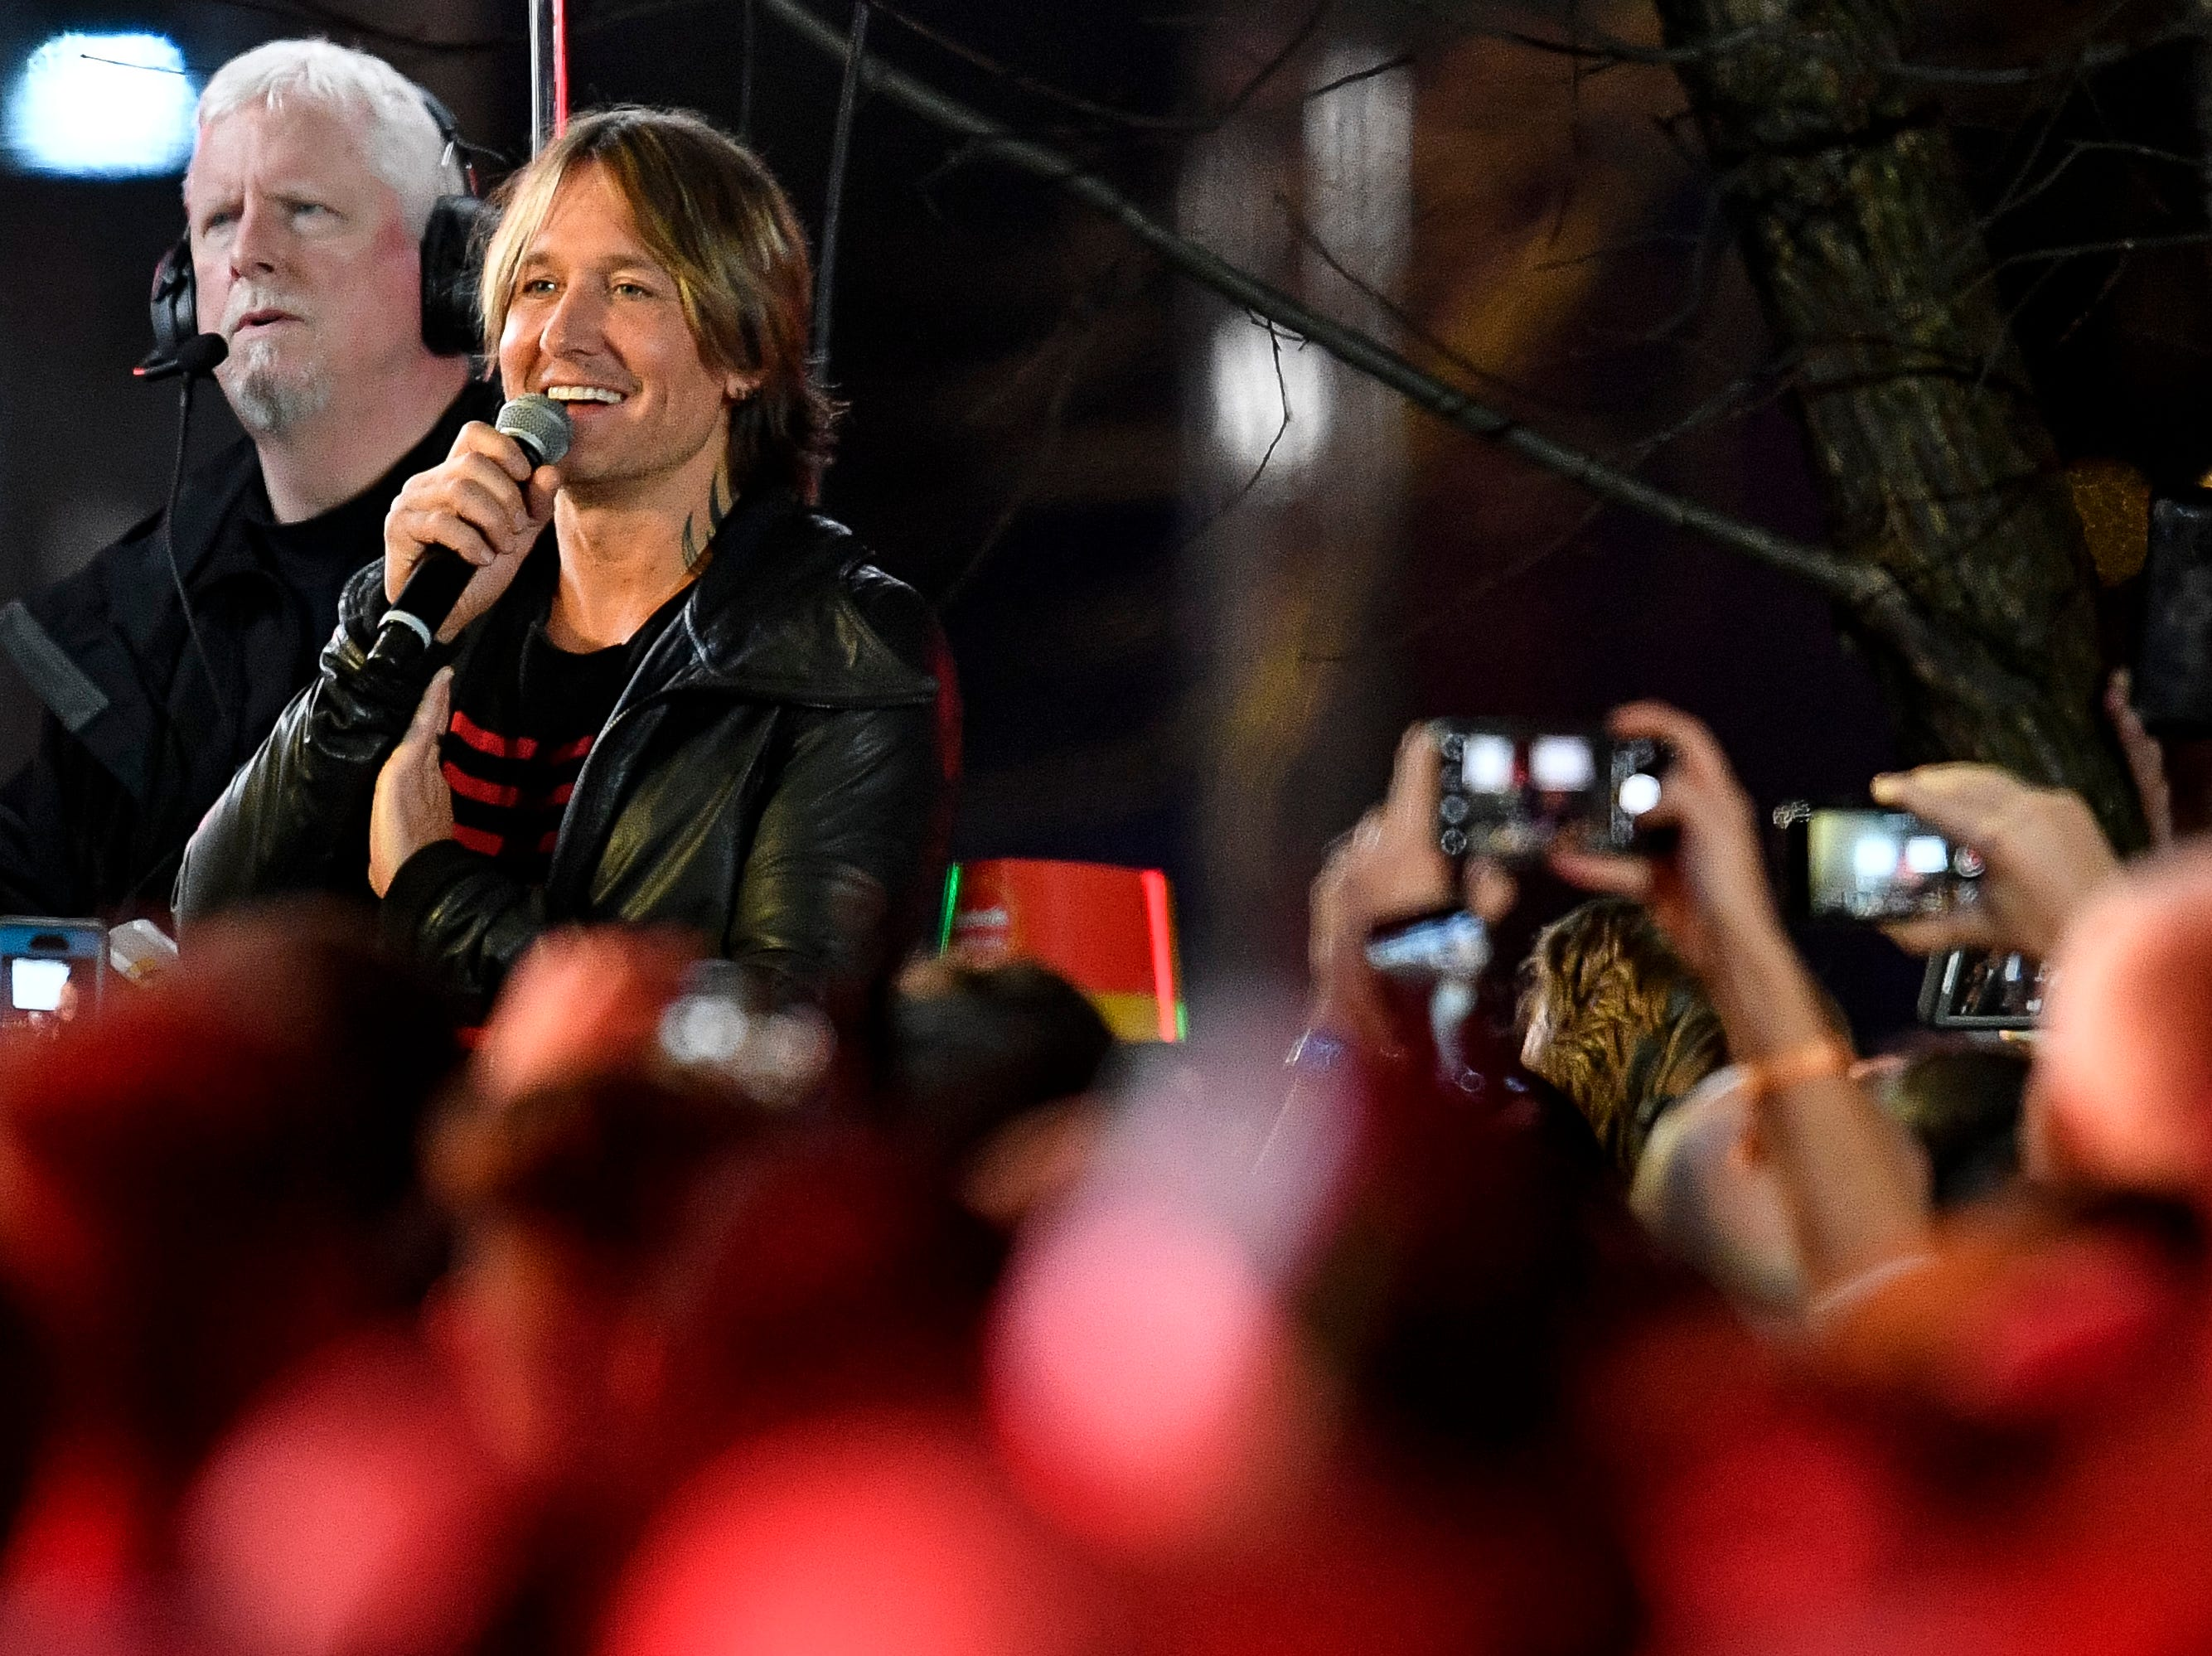 Keith Urban greets fans during the Jack Daniel's Music City Midnight: New Year's Eve event at Bicentennial Capitol Mall State Park in Nashville, Tenn., Monday, Dec. 31, 2018.